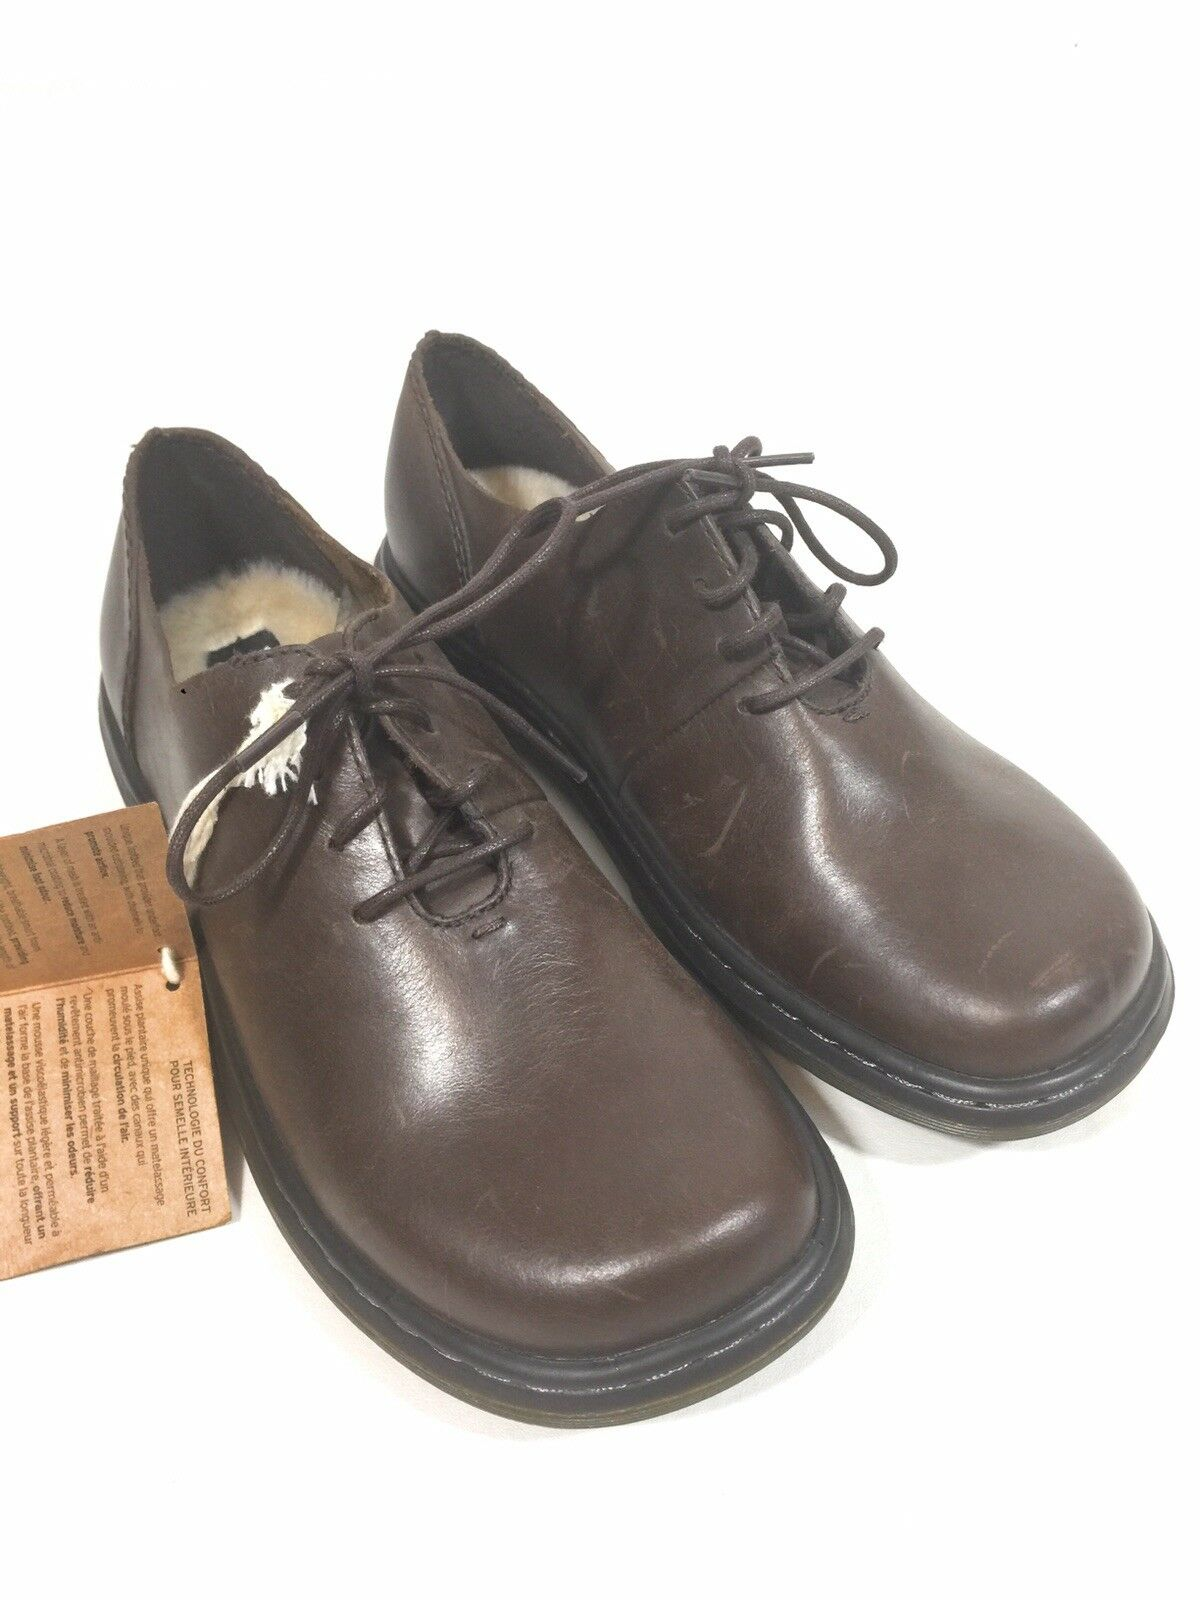 Dr. Martens Women's Lorrie III Brown Oily Illusions Lace Up shoes Size 7 New